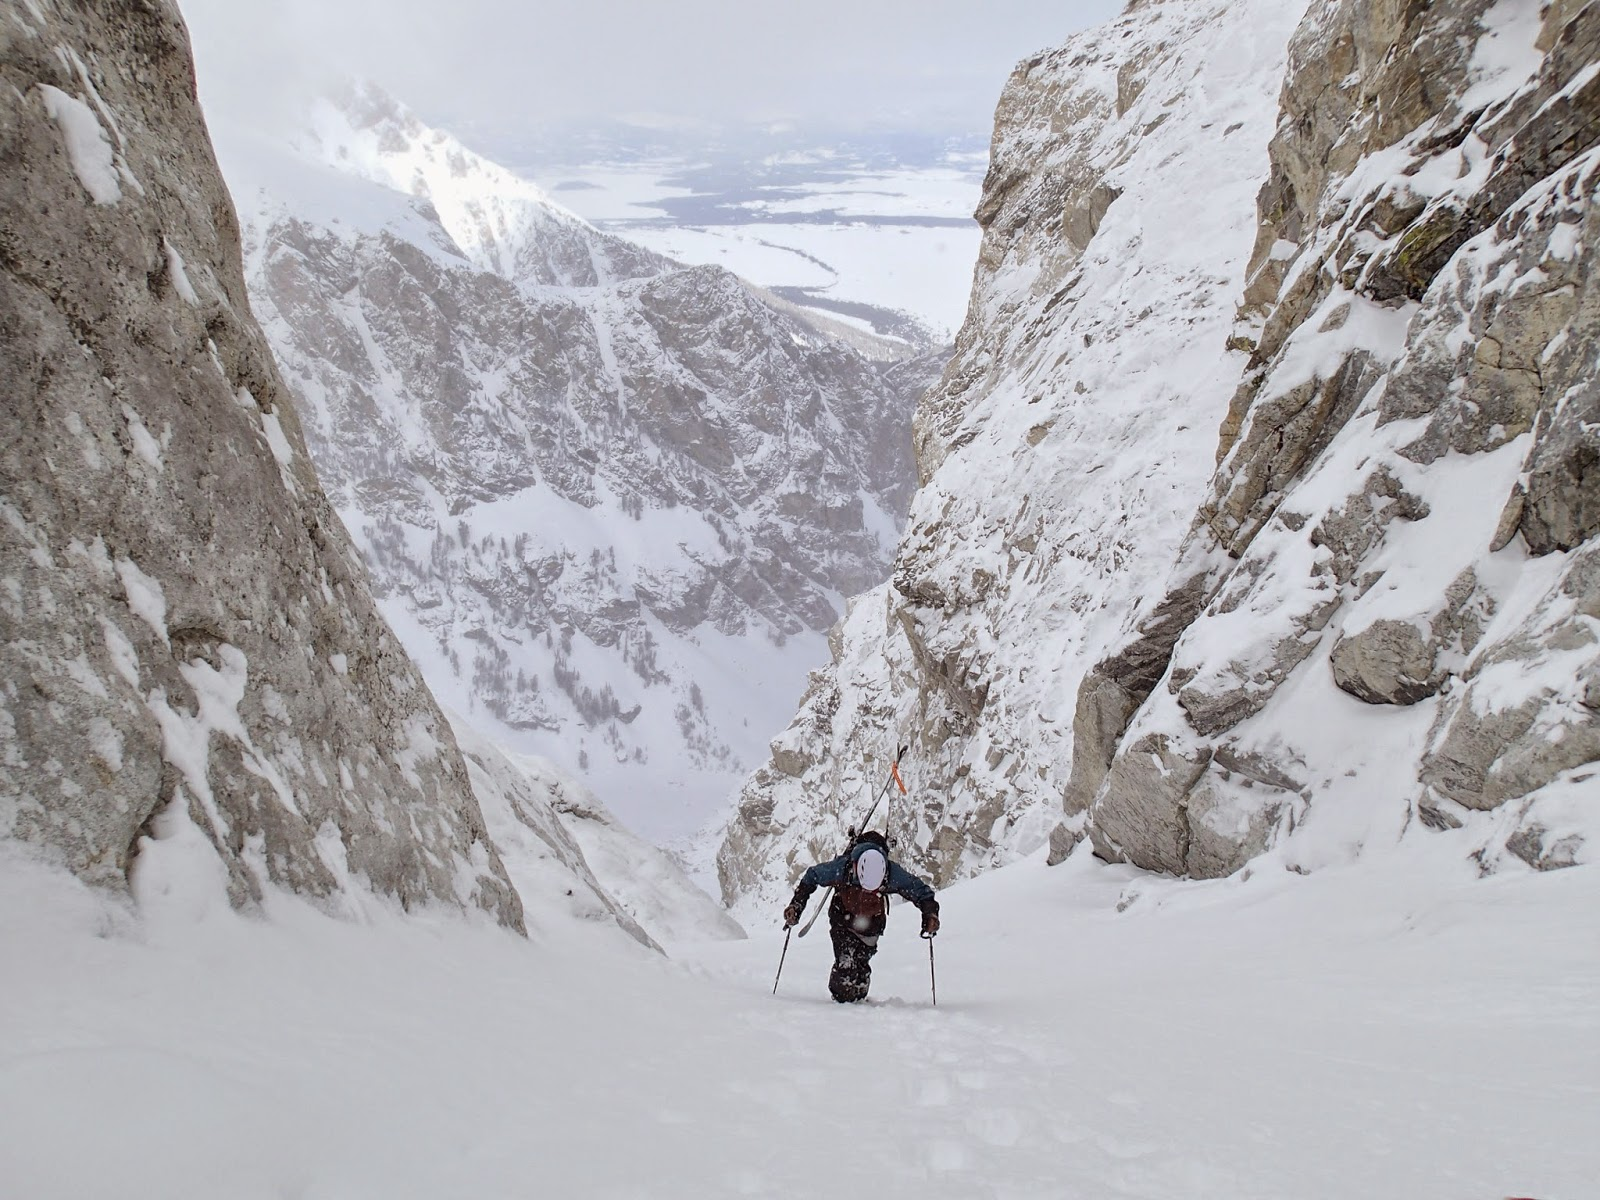 http://www.mountainenthusiast.com/2015/03/west-hourglass-couloir.html